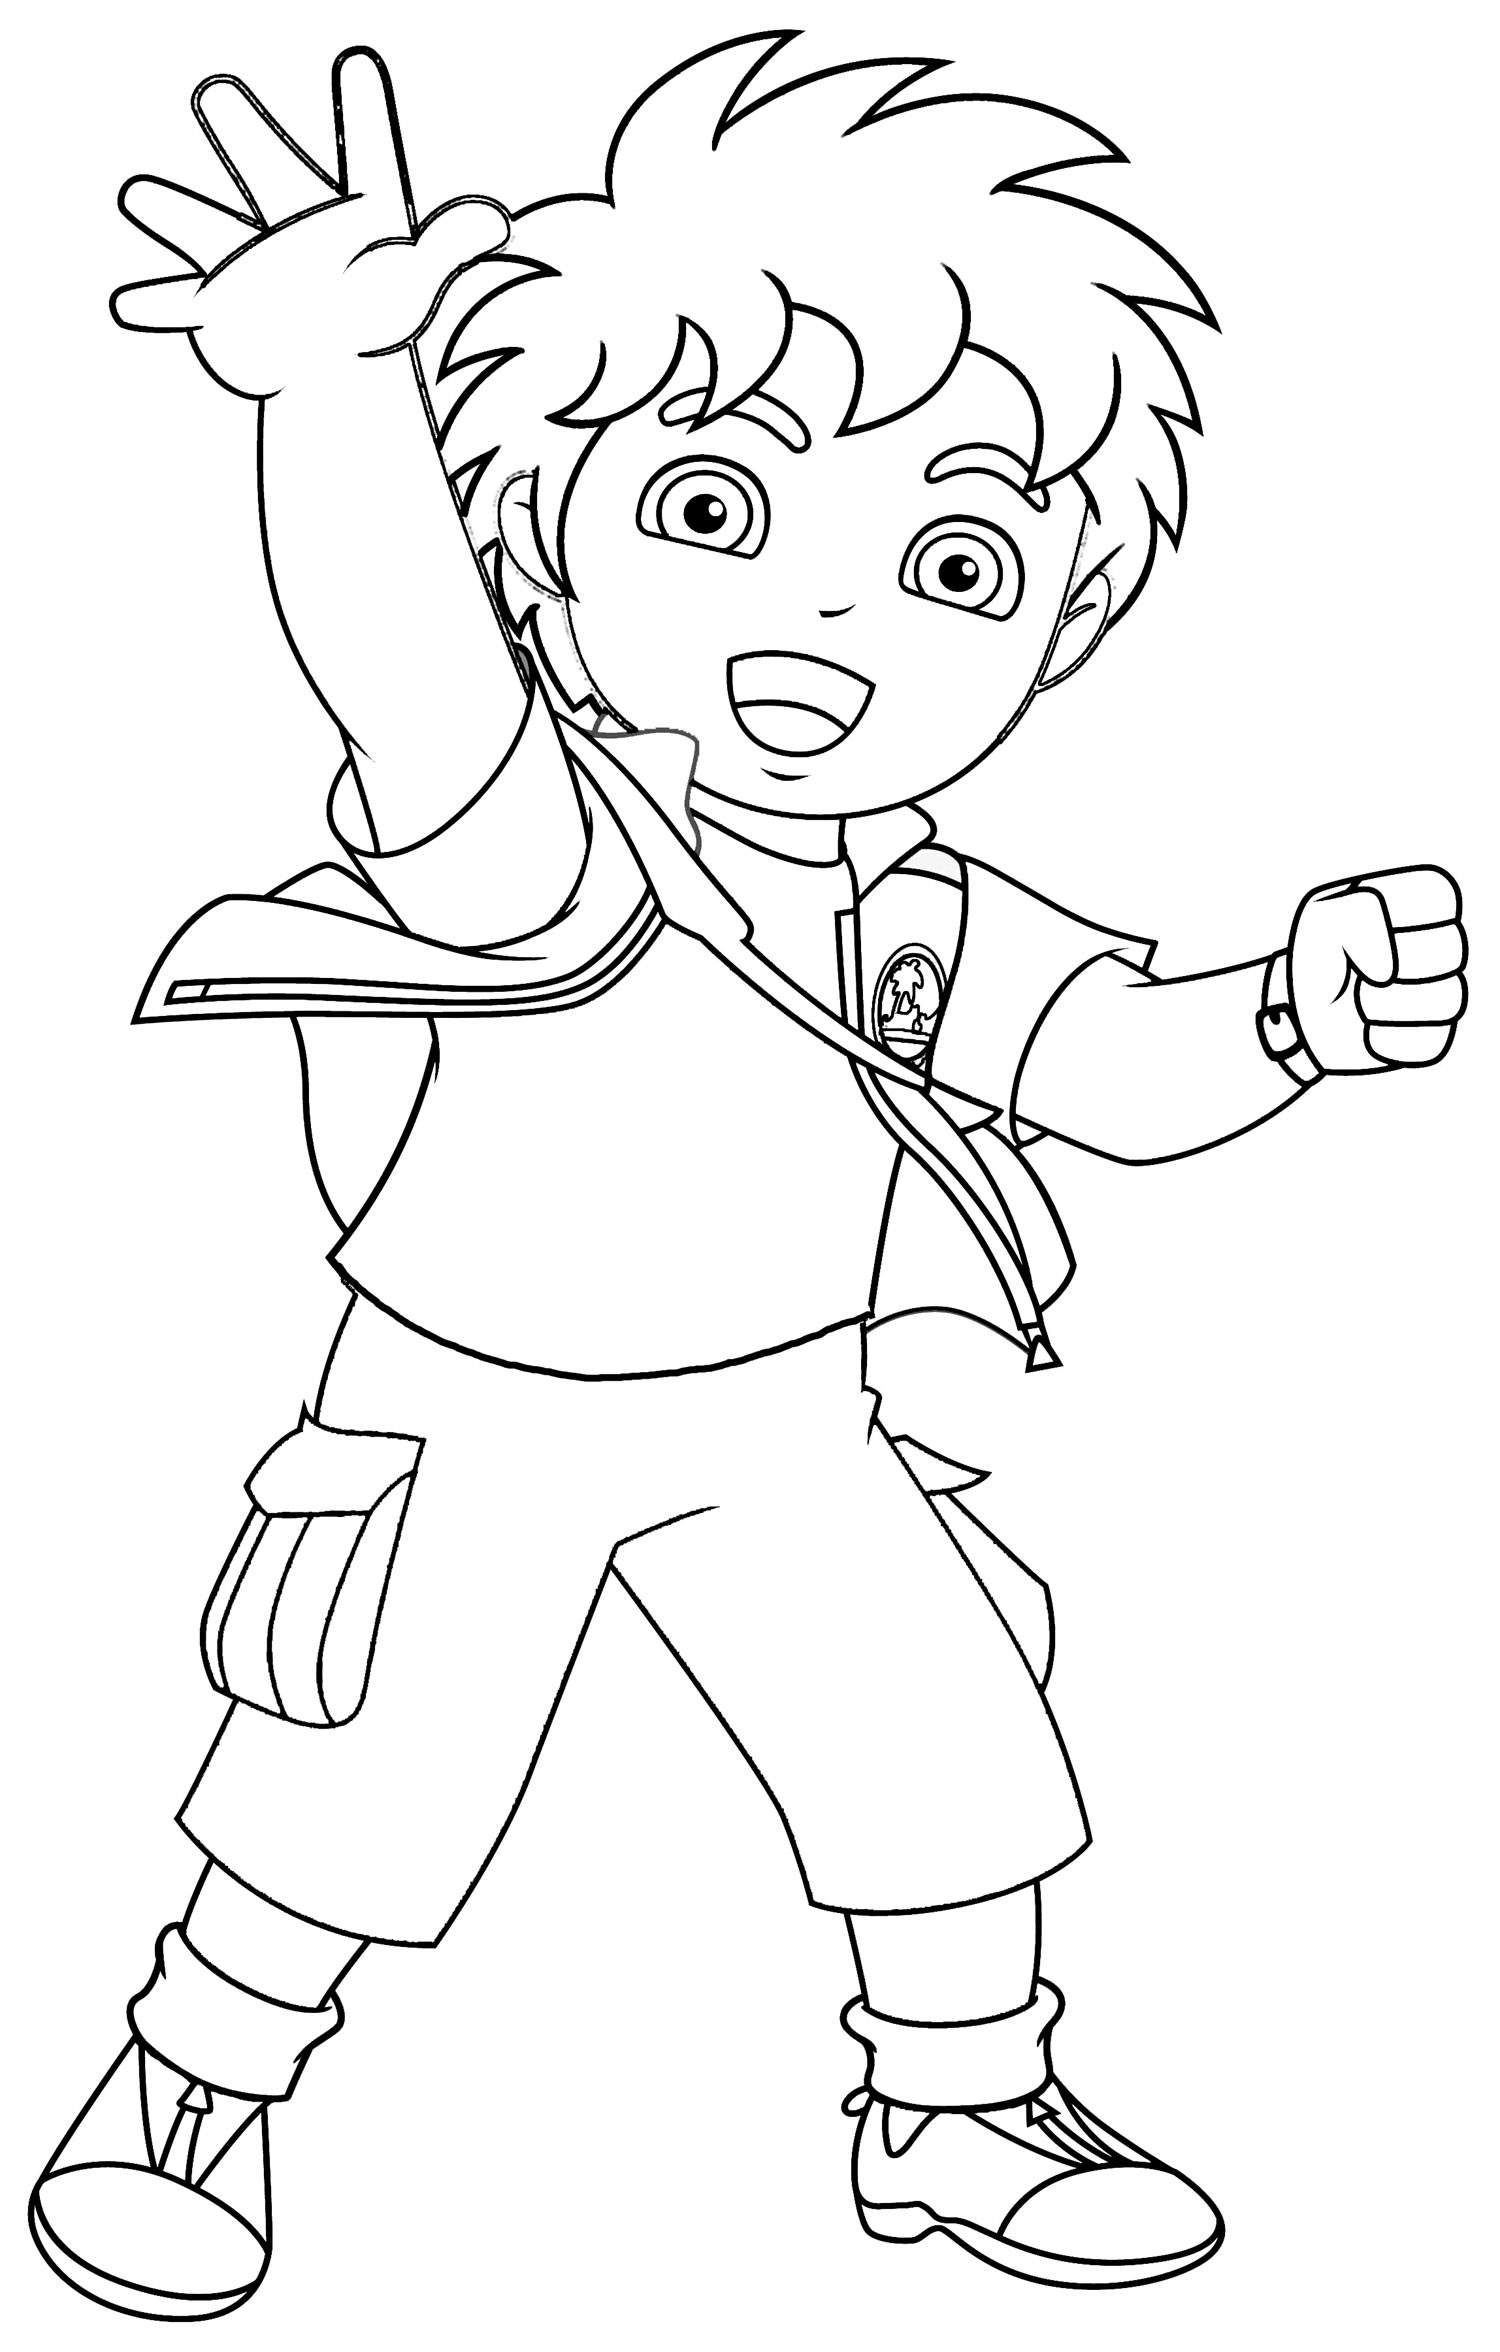 Nick Jr Coloring Pages 8 Coloring Kids Nick Junior Coloring Pages